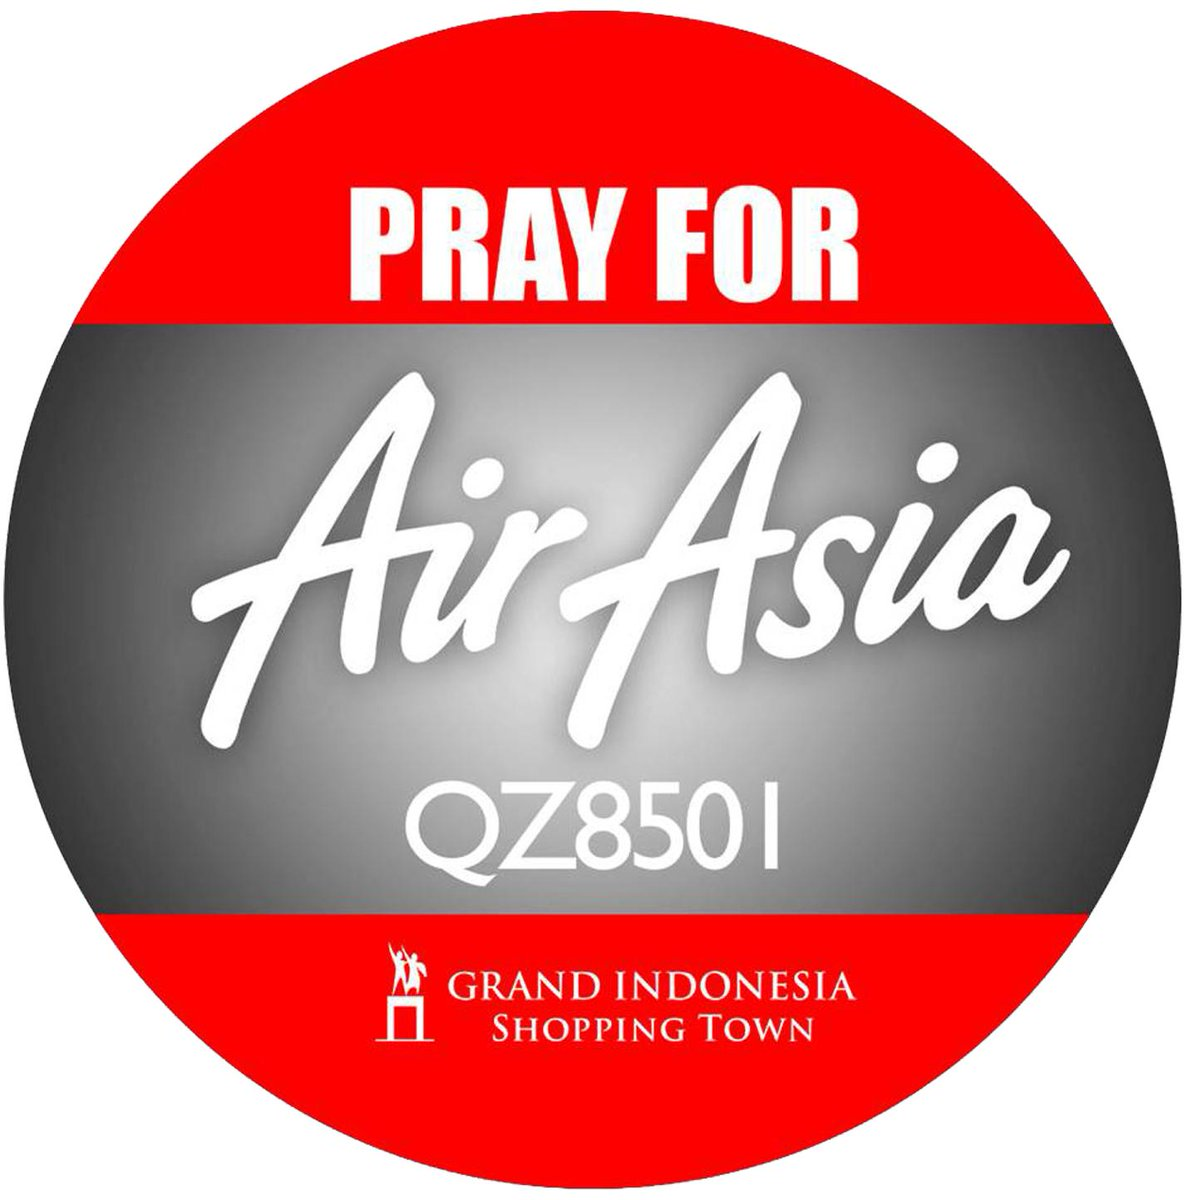 Safe flight. That means a lot. Our deepest condolences to all the victims of #QZ8501 and sending our prayers to them http://t.co/yHVJqHKXvn